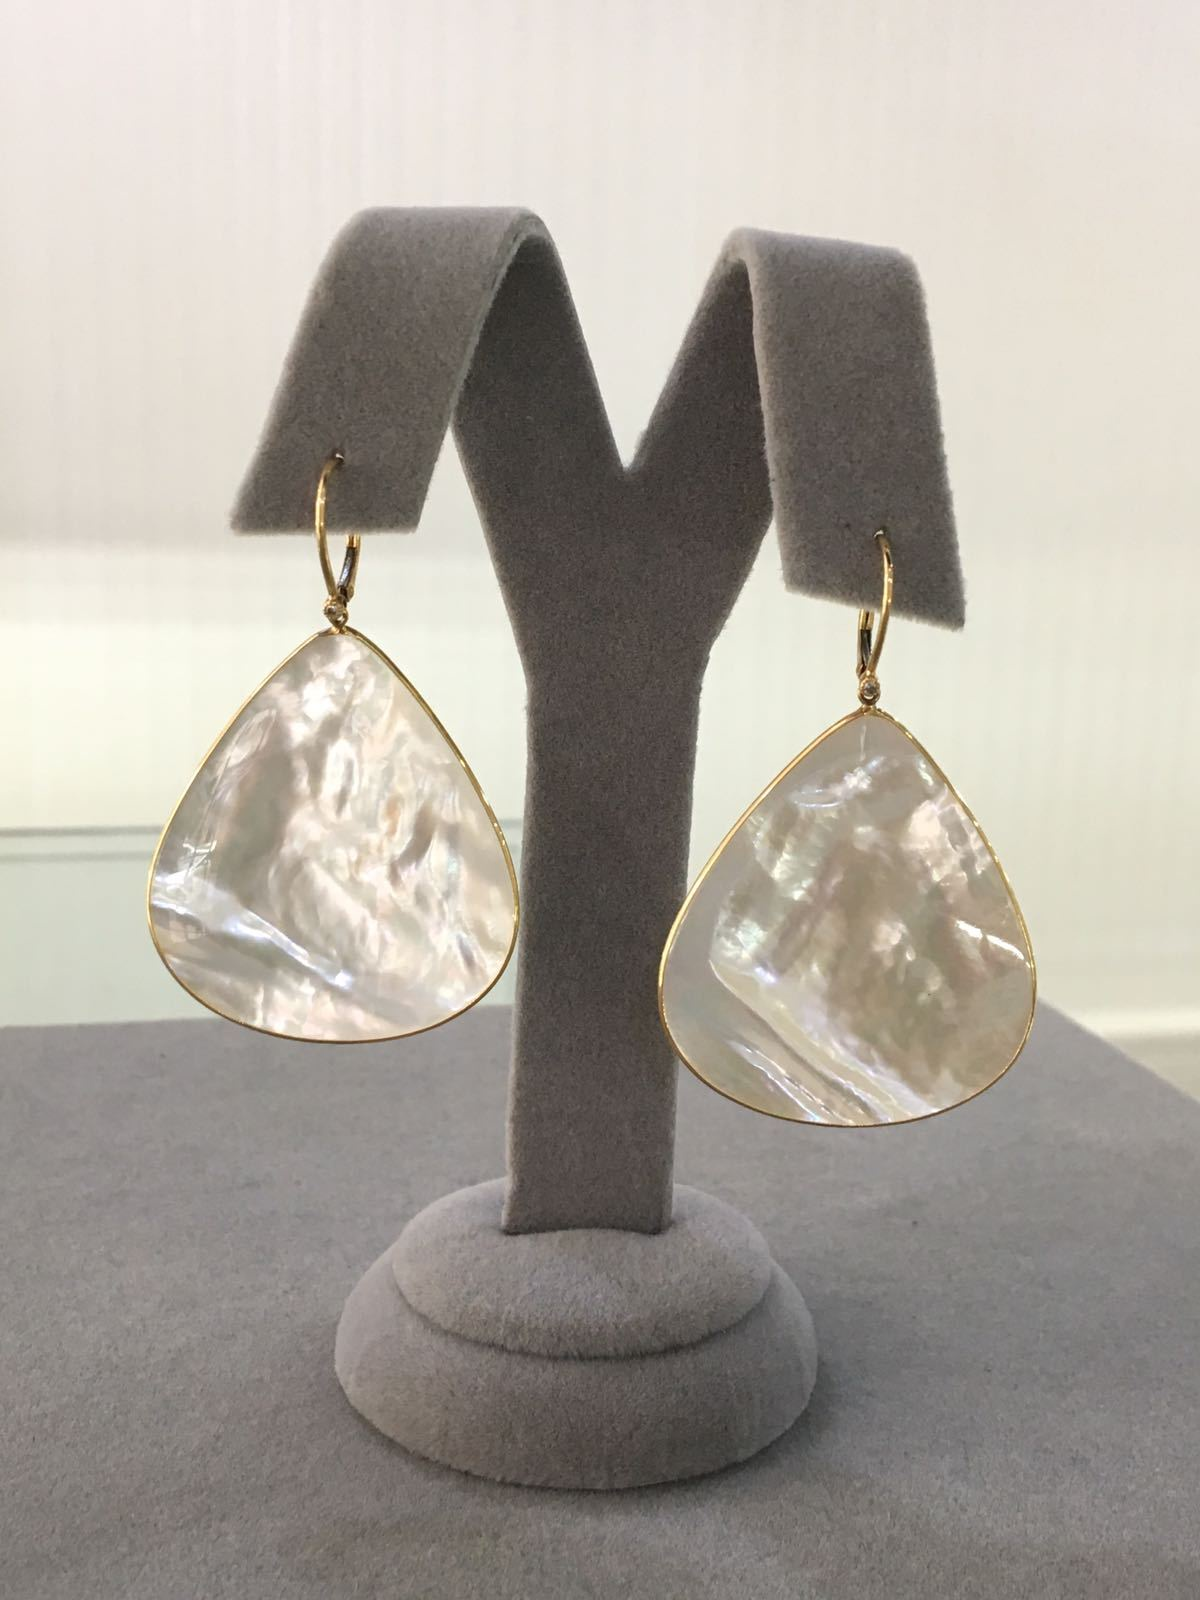 SALE! White Mother-of-Pearl and Diamond Earrings